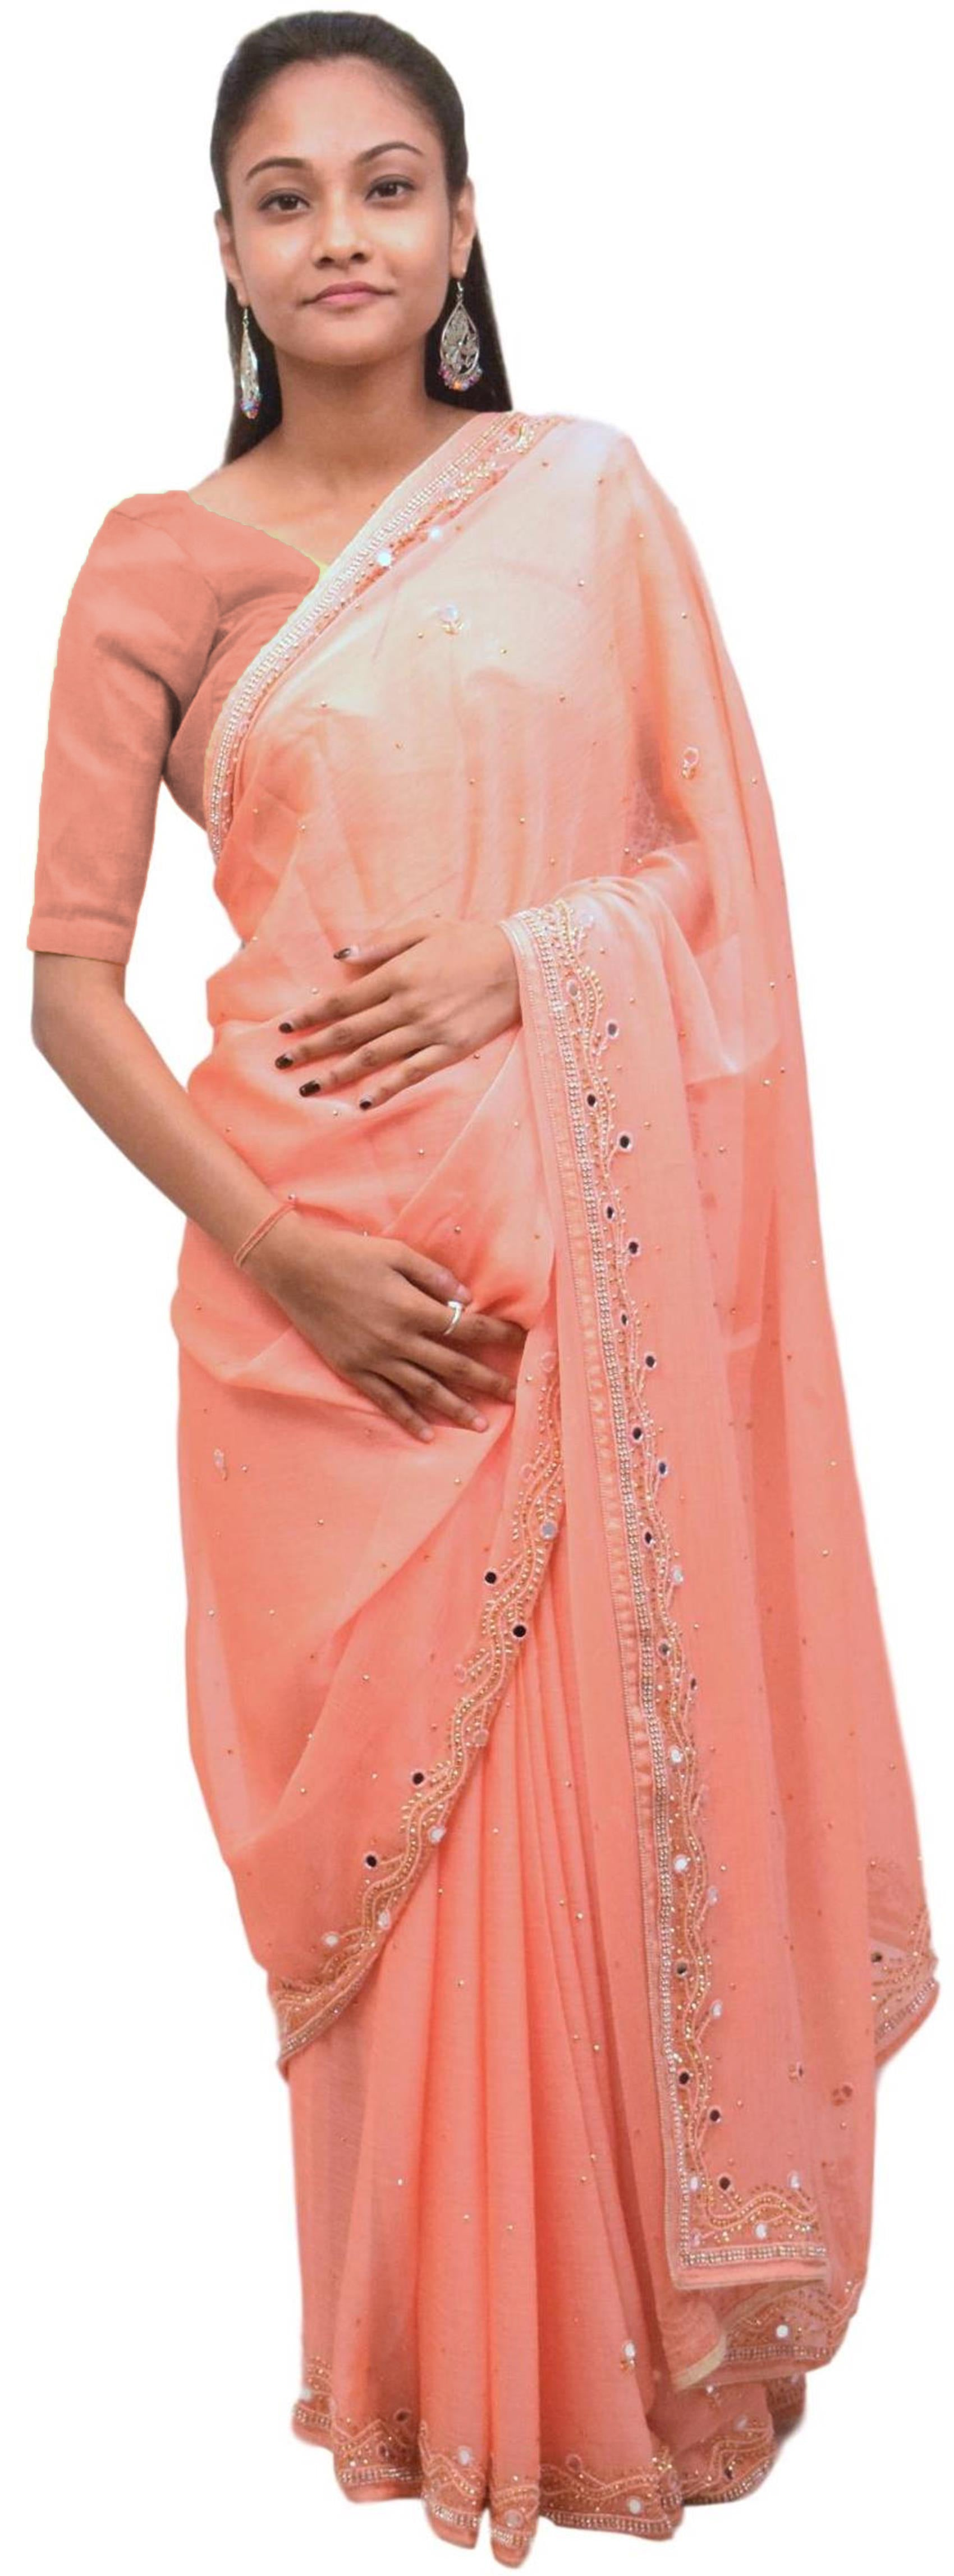 Peach Designer Wedding Partywear Georgette Mirror Beads Stone Hand Embroidery Work Bridal Saree Sari E414